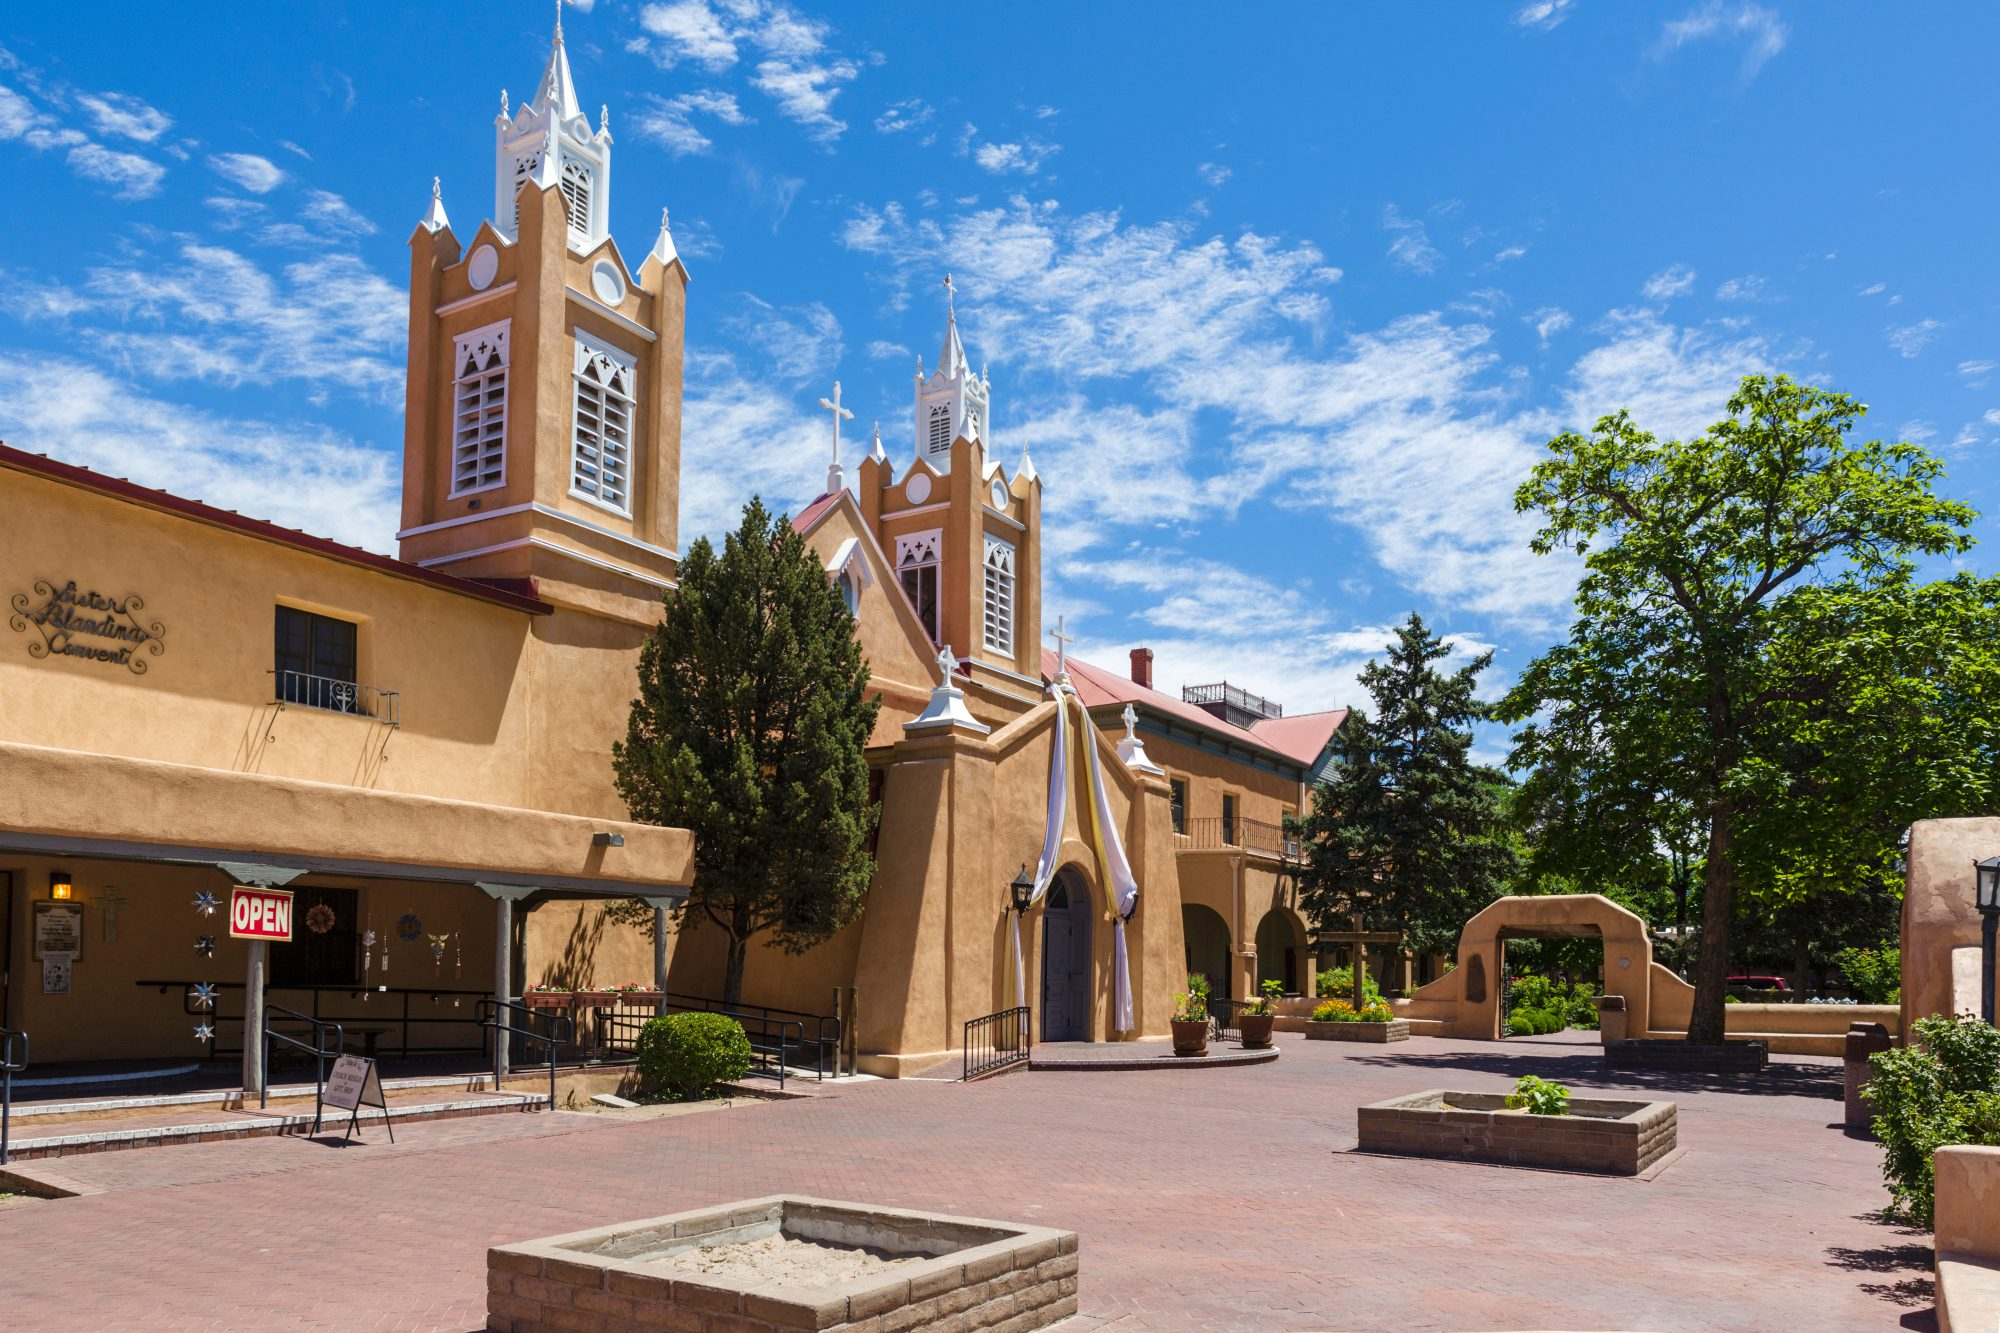 America's Most Romantic Cities: No. 8 Albuquerque